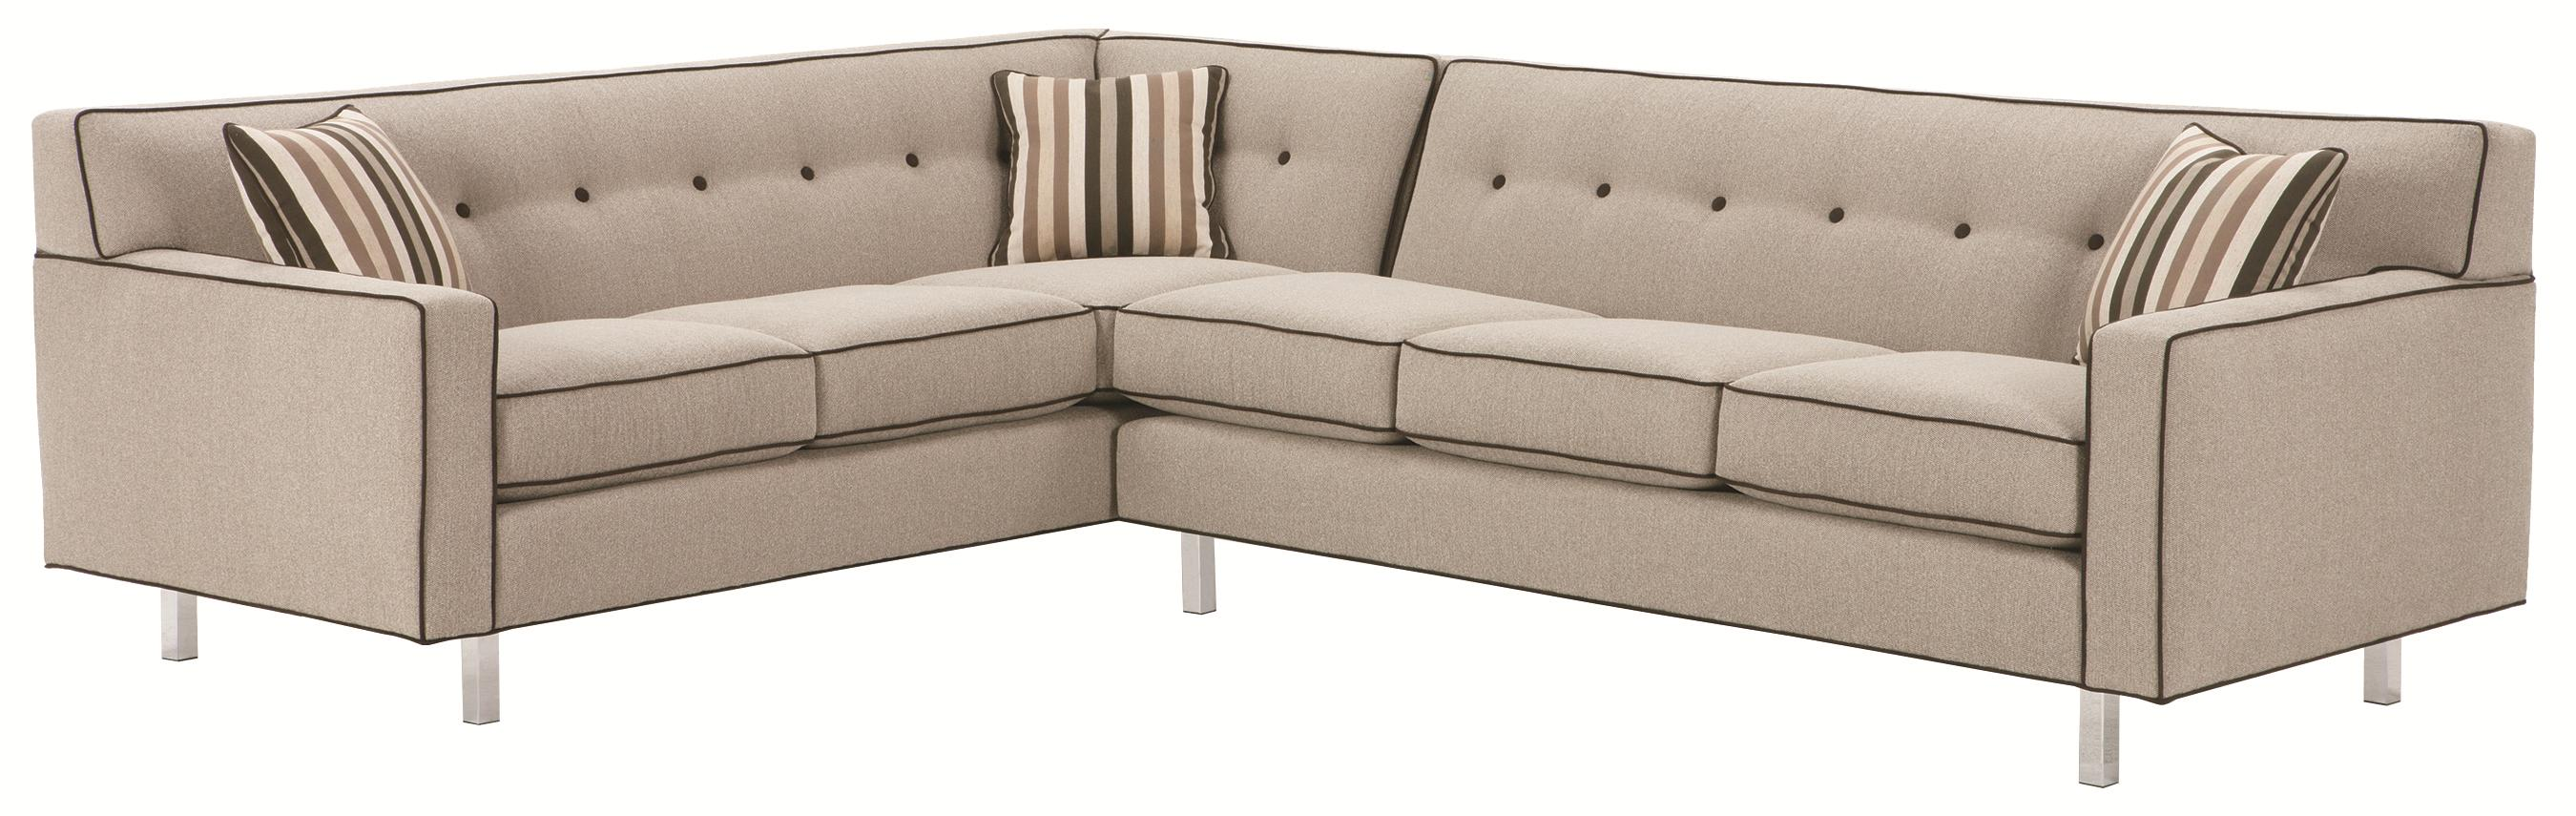 Rowe Dorset Corner Sectional with Tufted Back AHFA Sofa